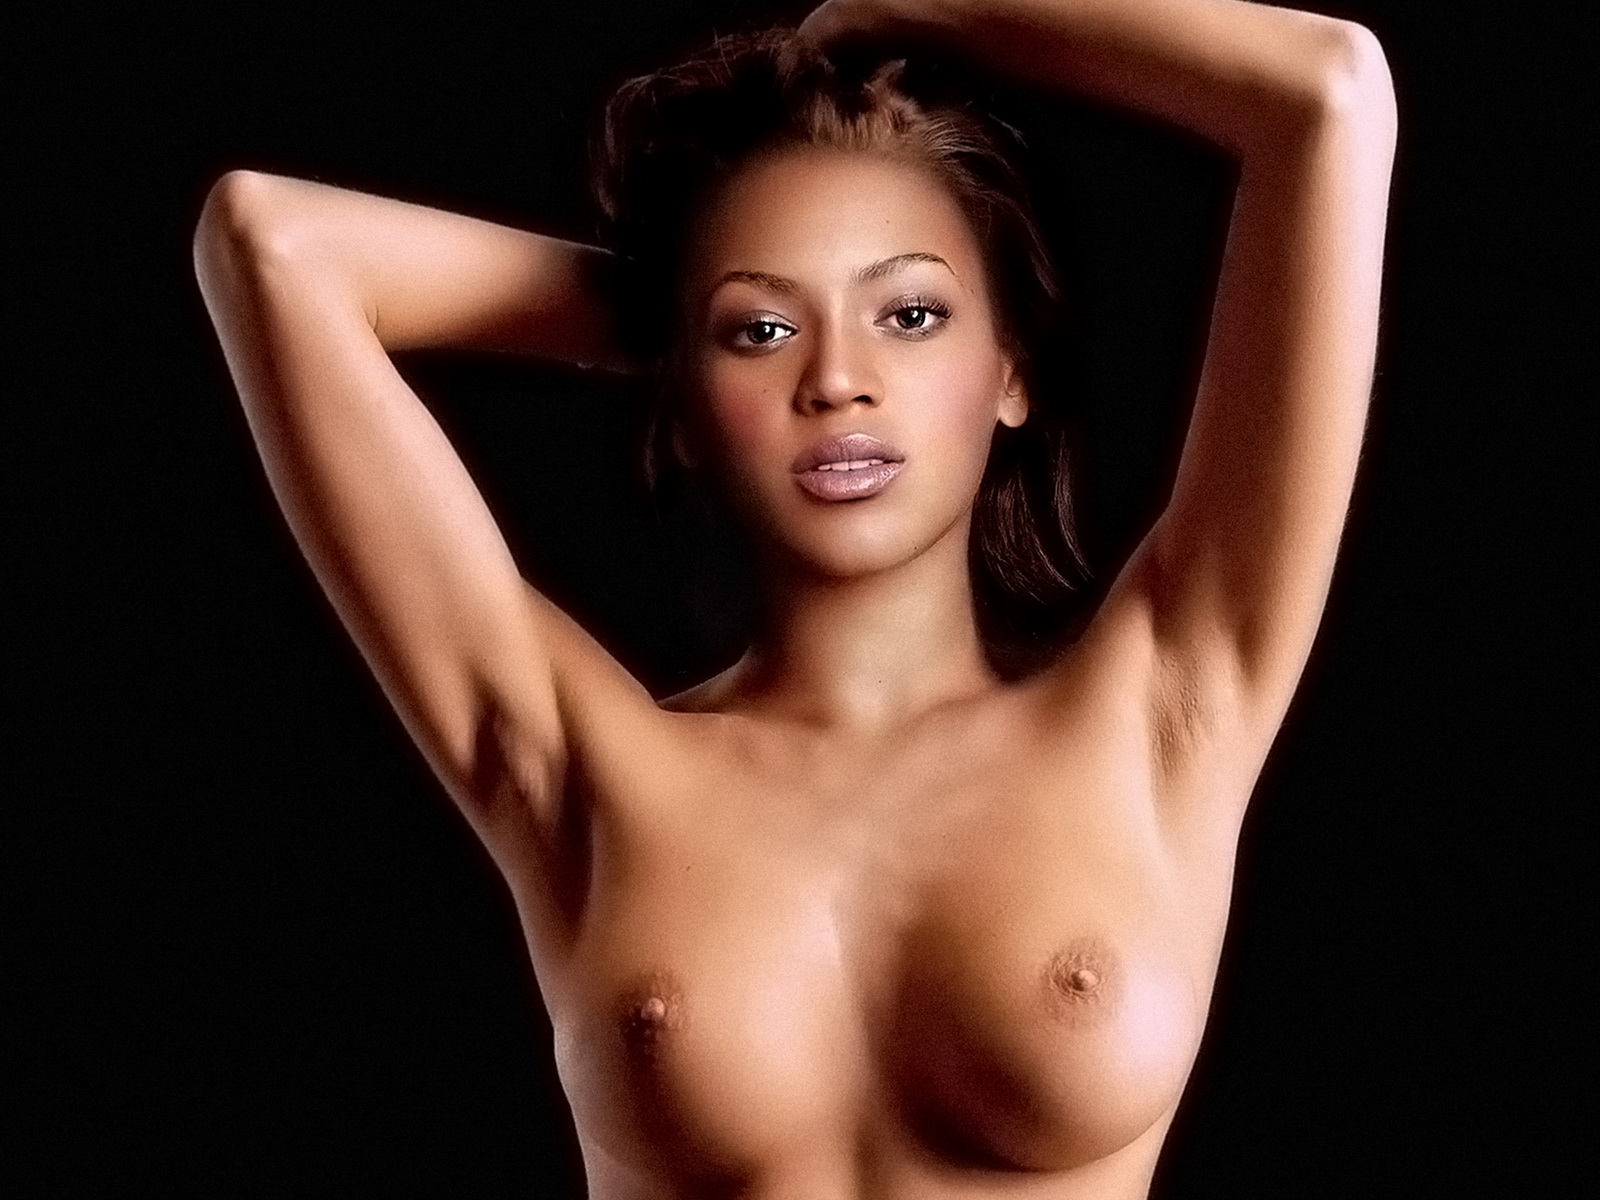 Necessary Beyonce nude naked topless